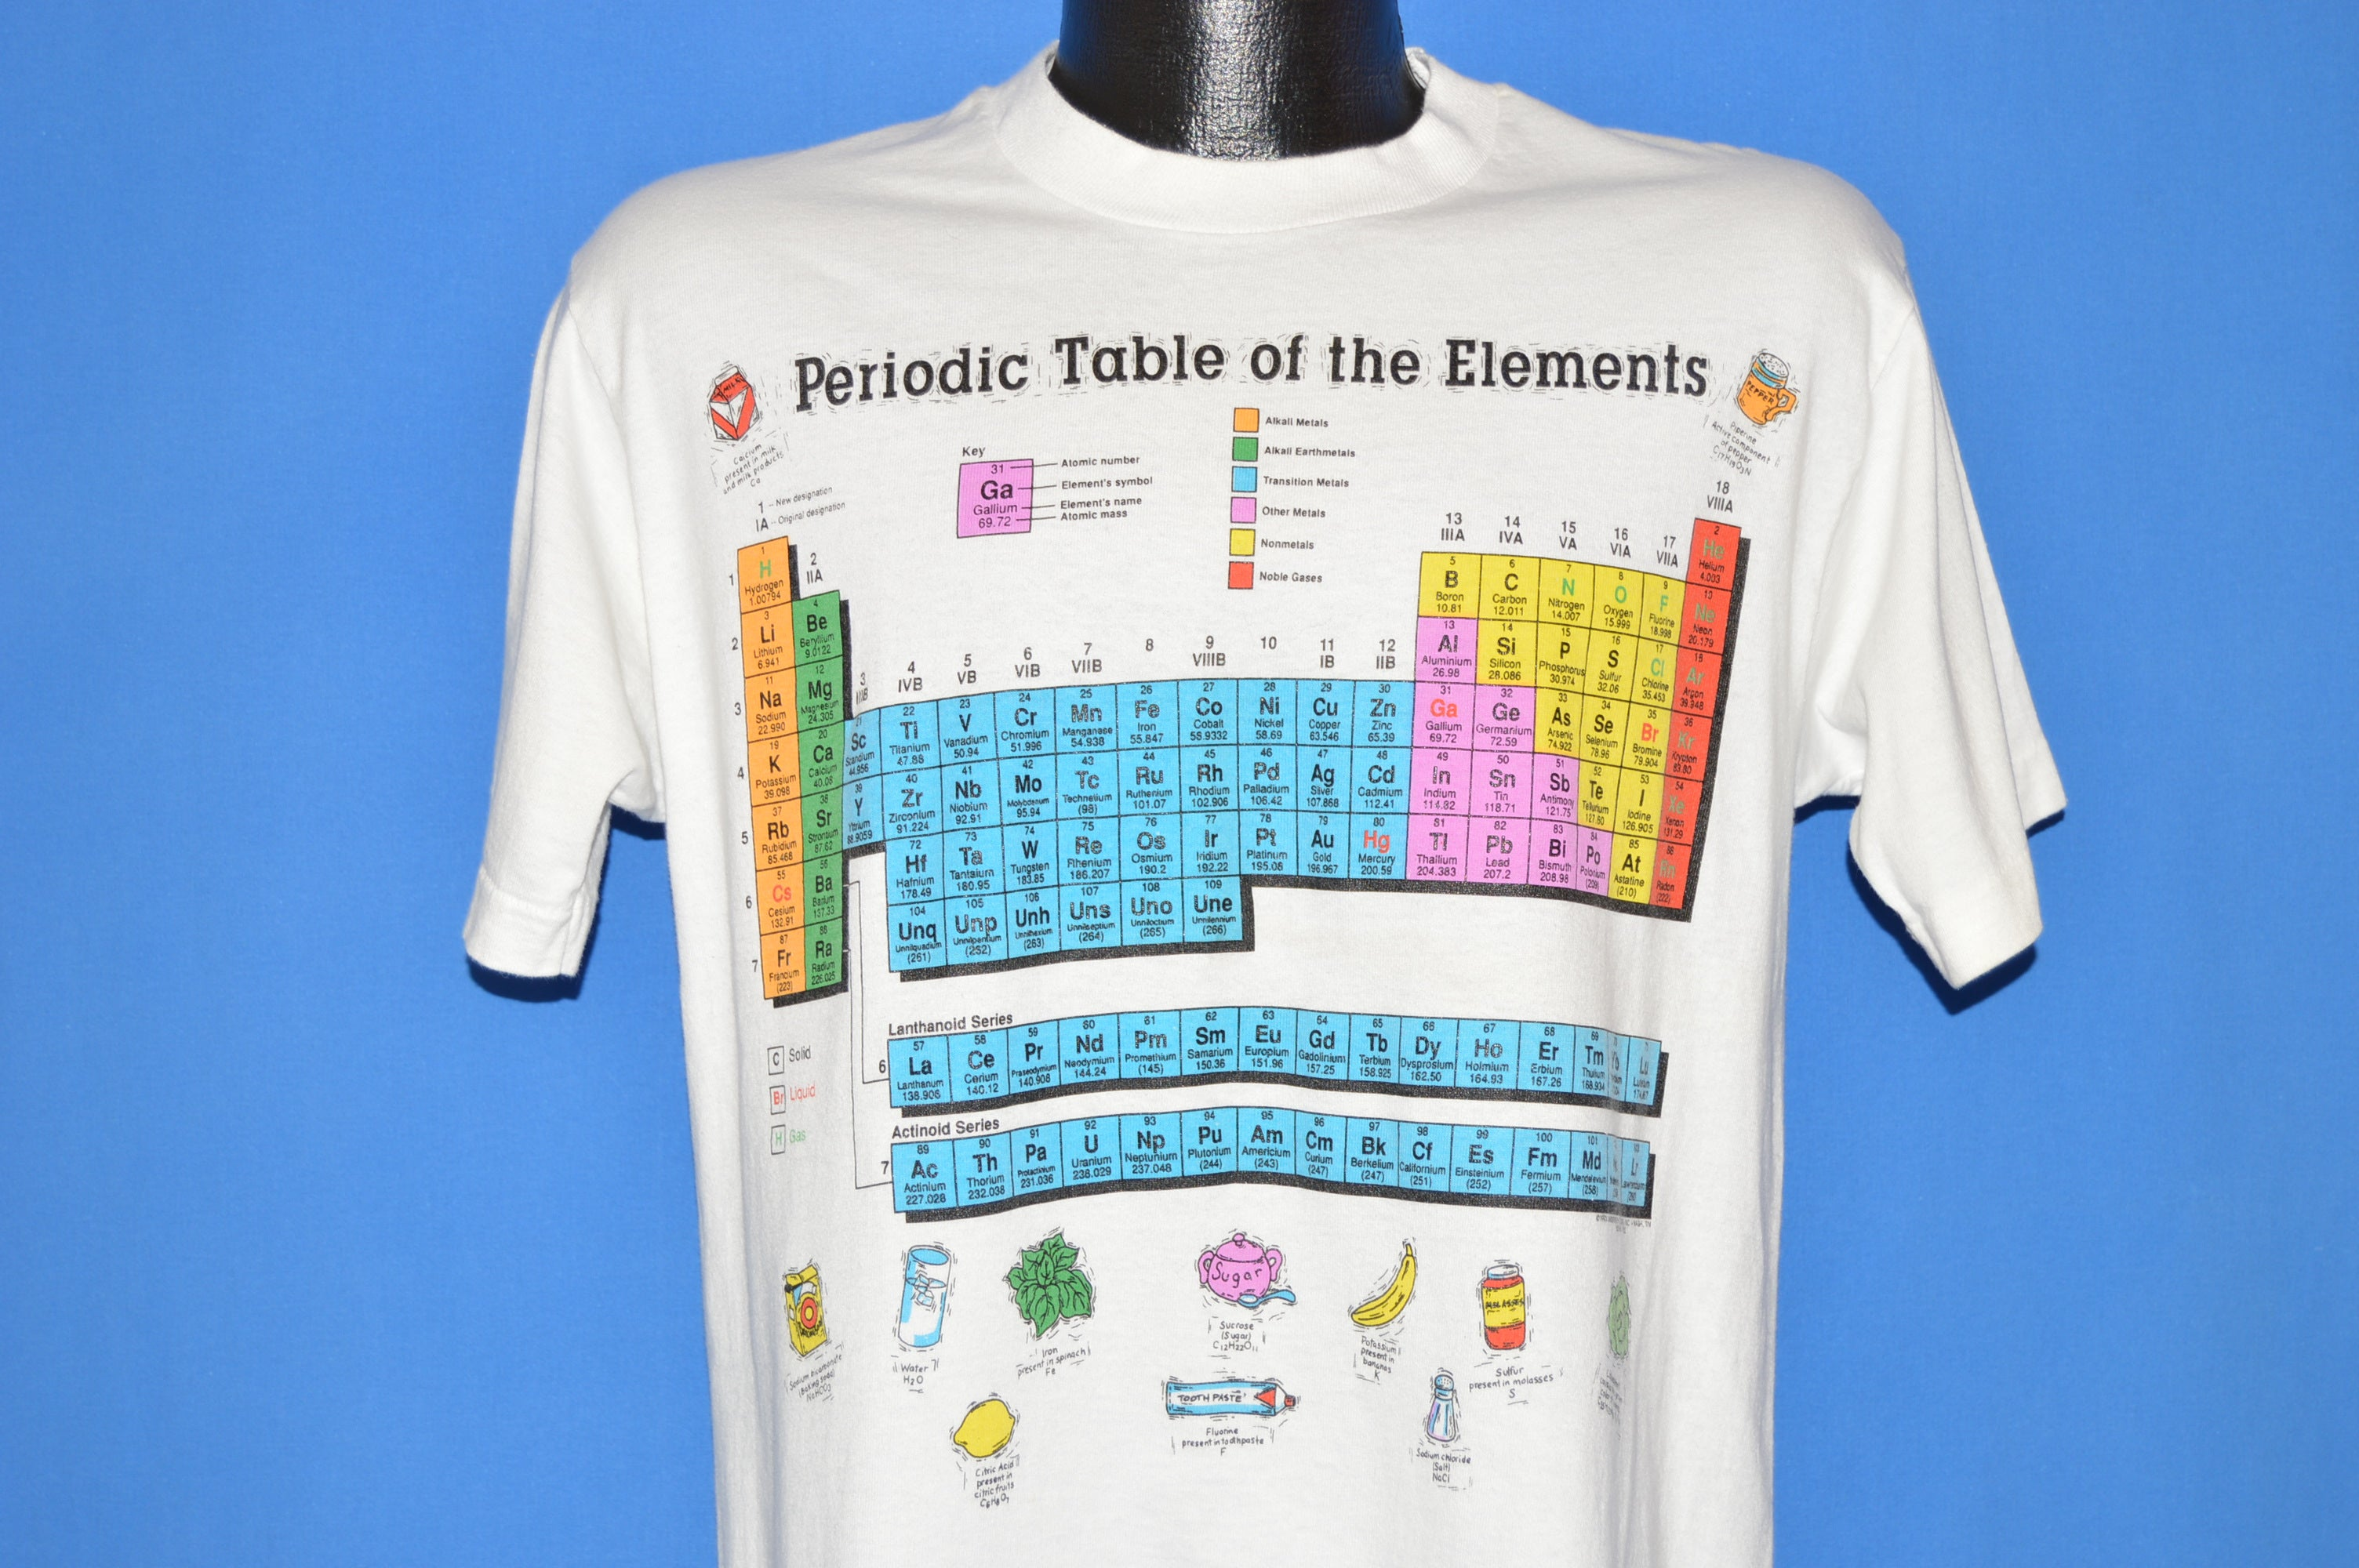 90s periodic table of elements science t shirt medium the captains 90s periodic table of elements science t shirt medium urtaz Image collections